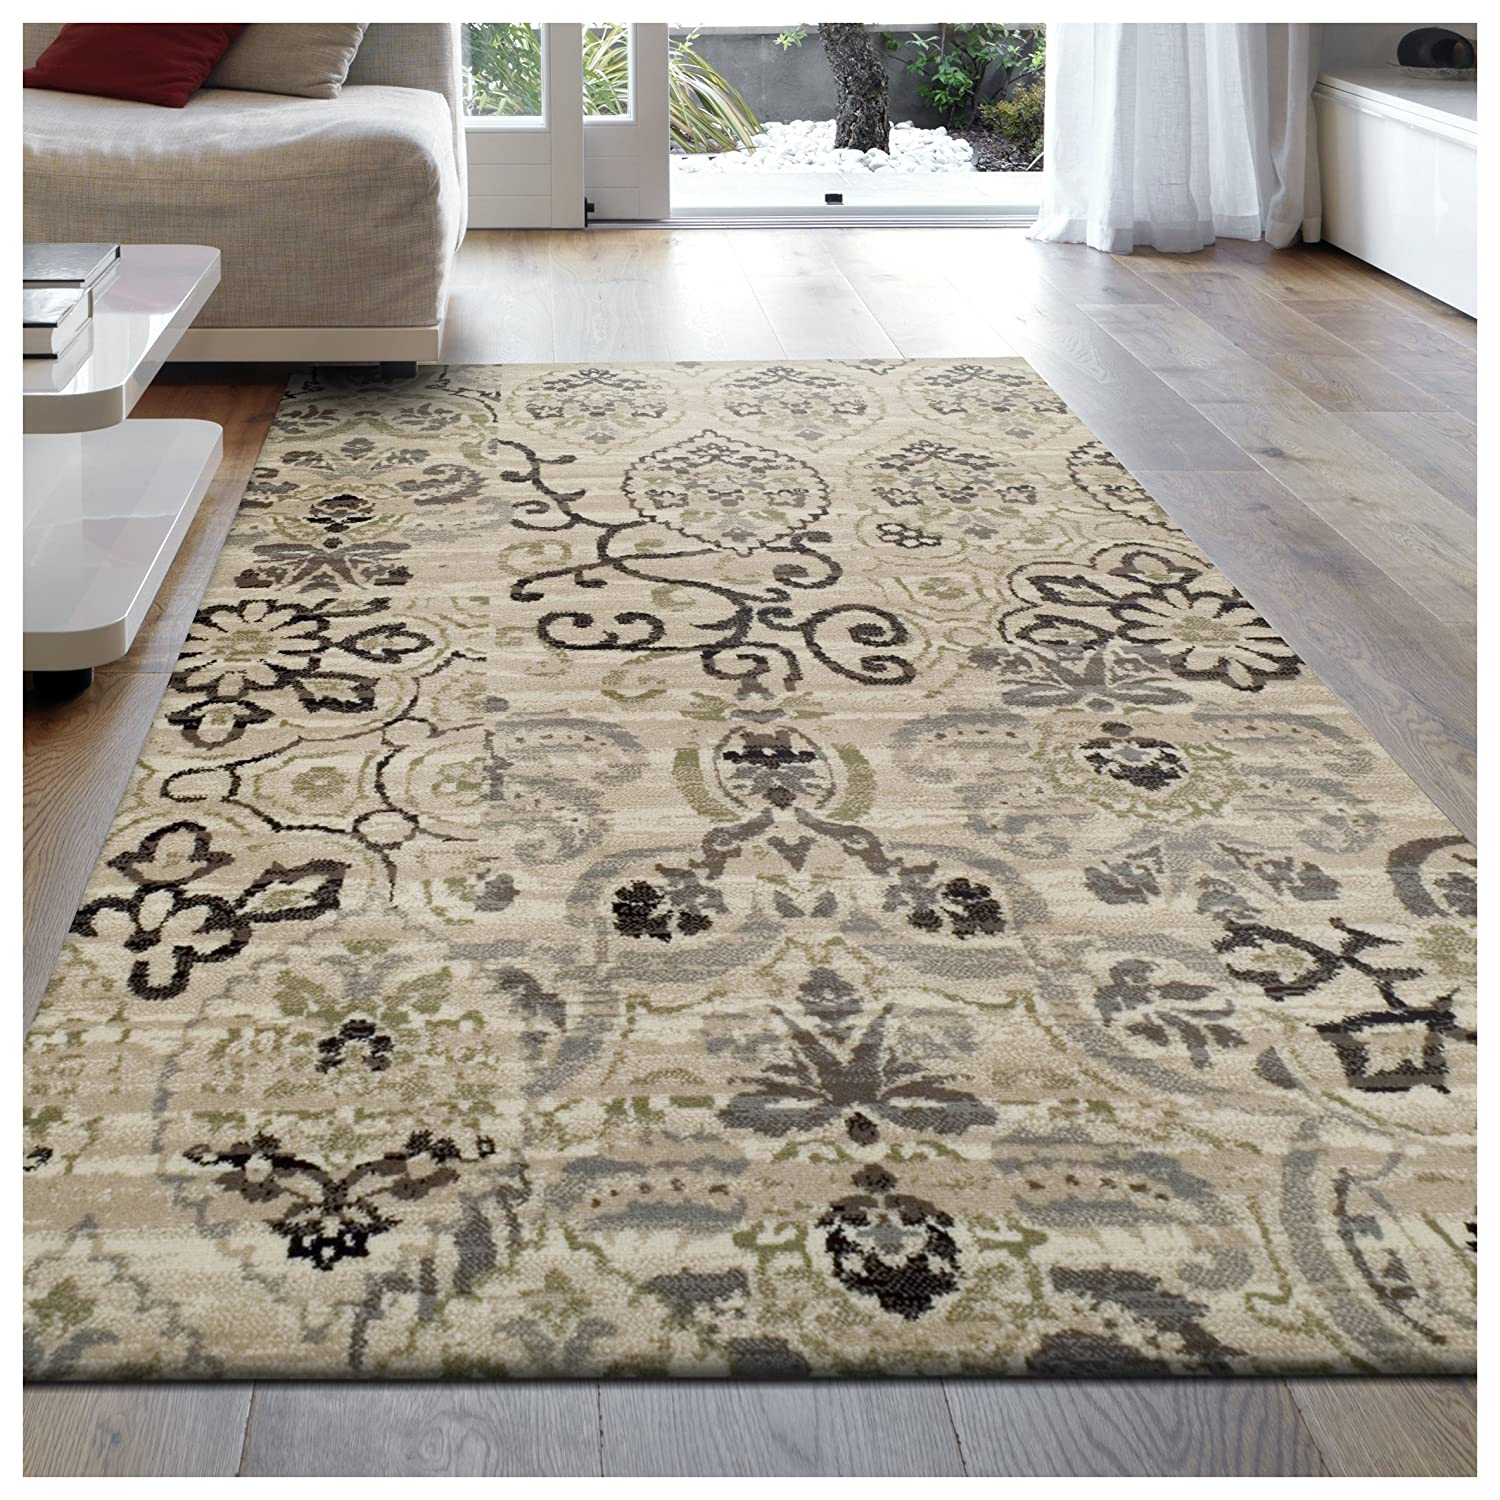 Superior 8mm Pile Height with Jute Backing, Gorgeous Patchworked Damask Design, Fashionable and Affordable Woven Rugs, 5' x 8' Rug, Beige